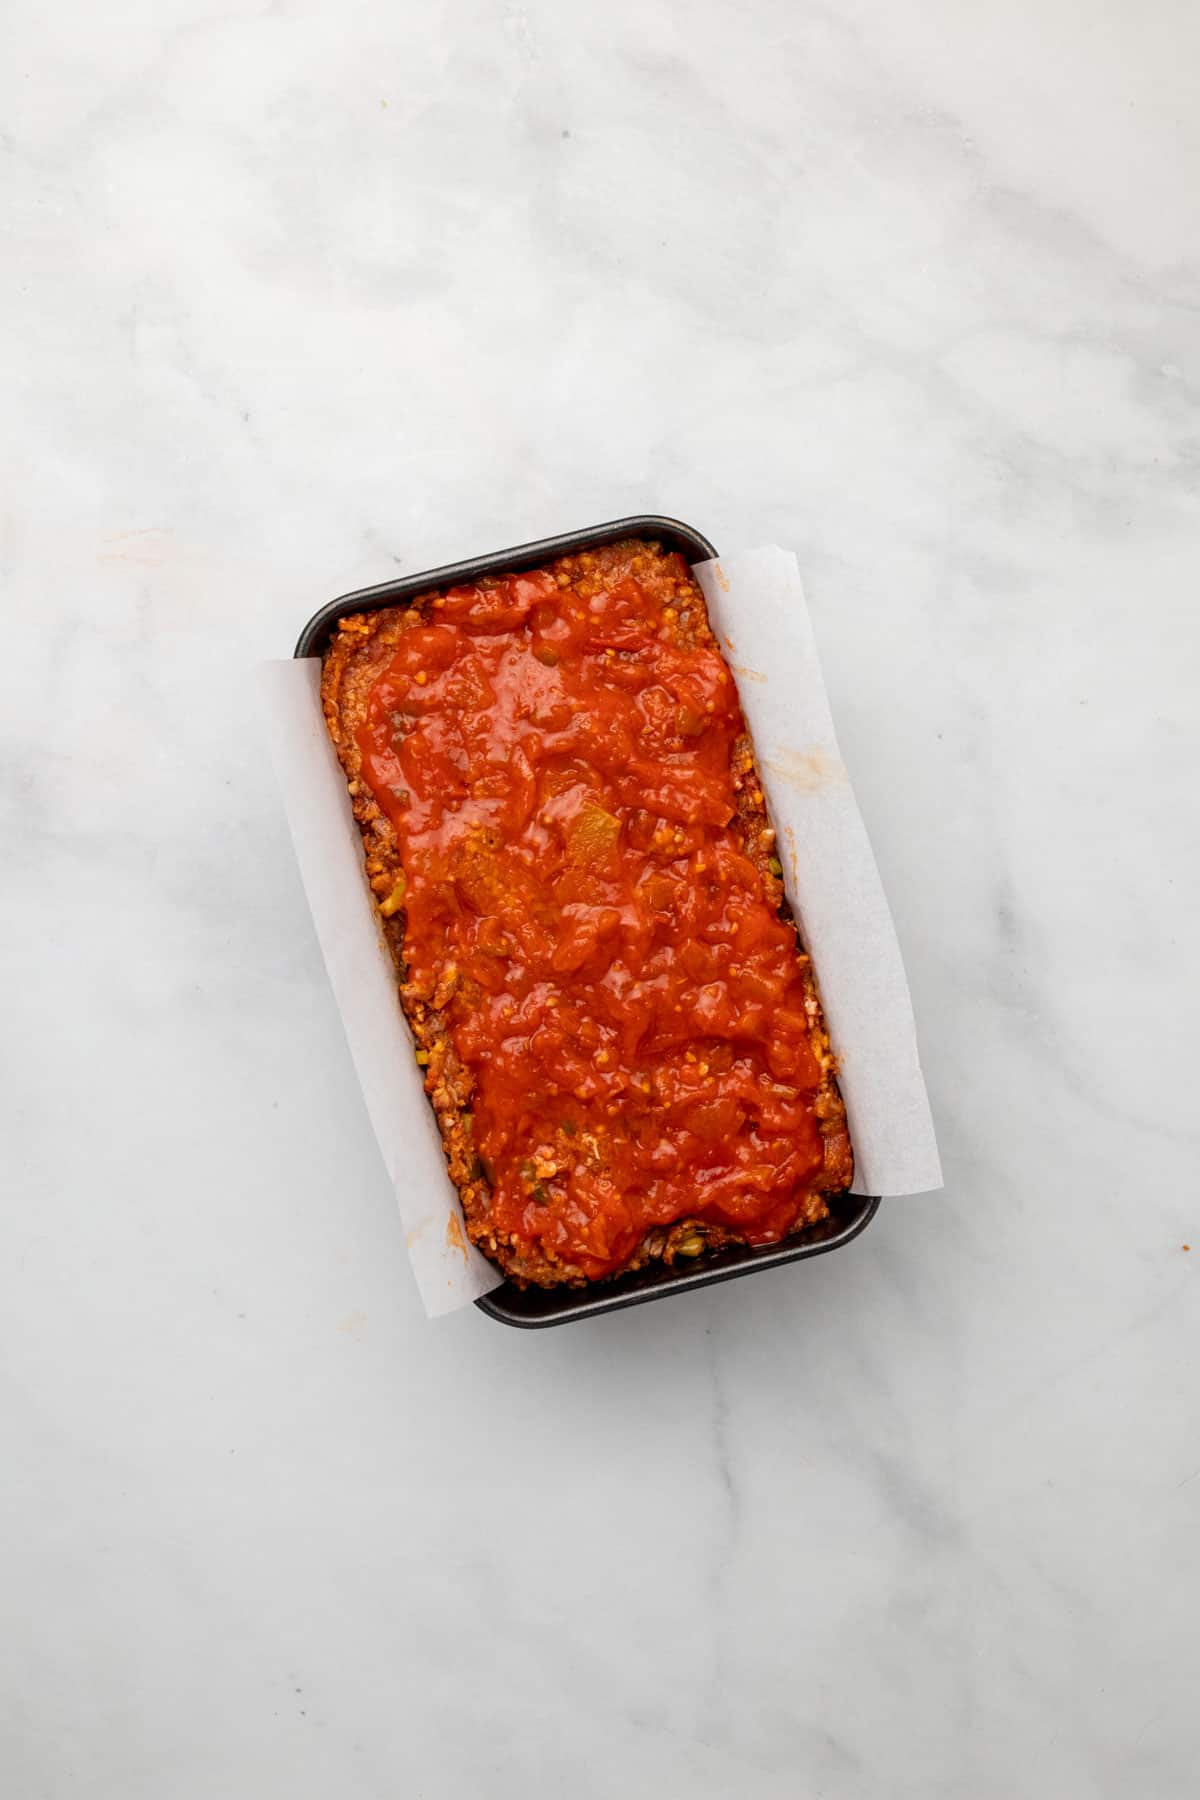 Meatloaf topped with salsa